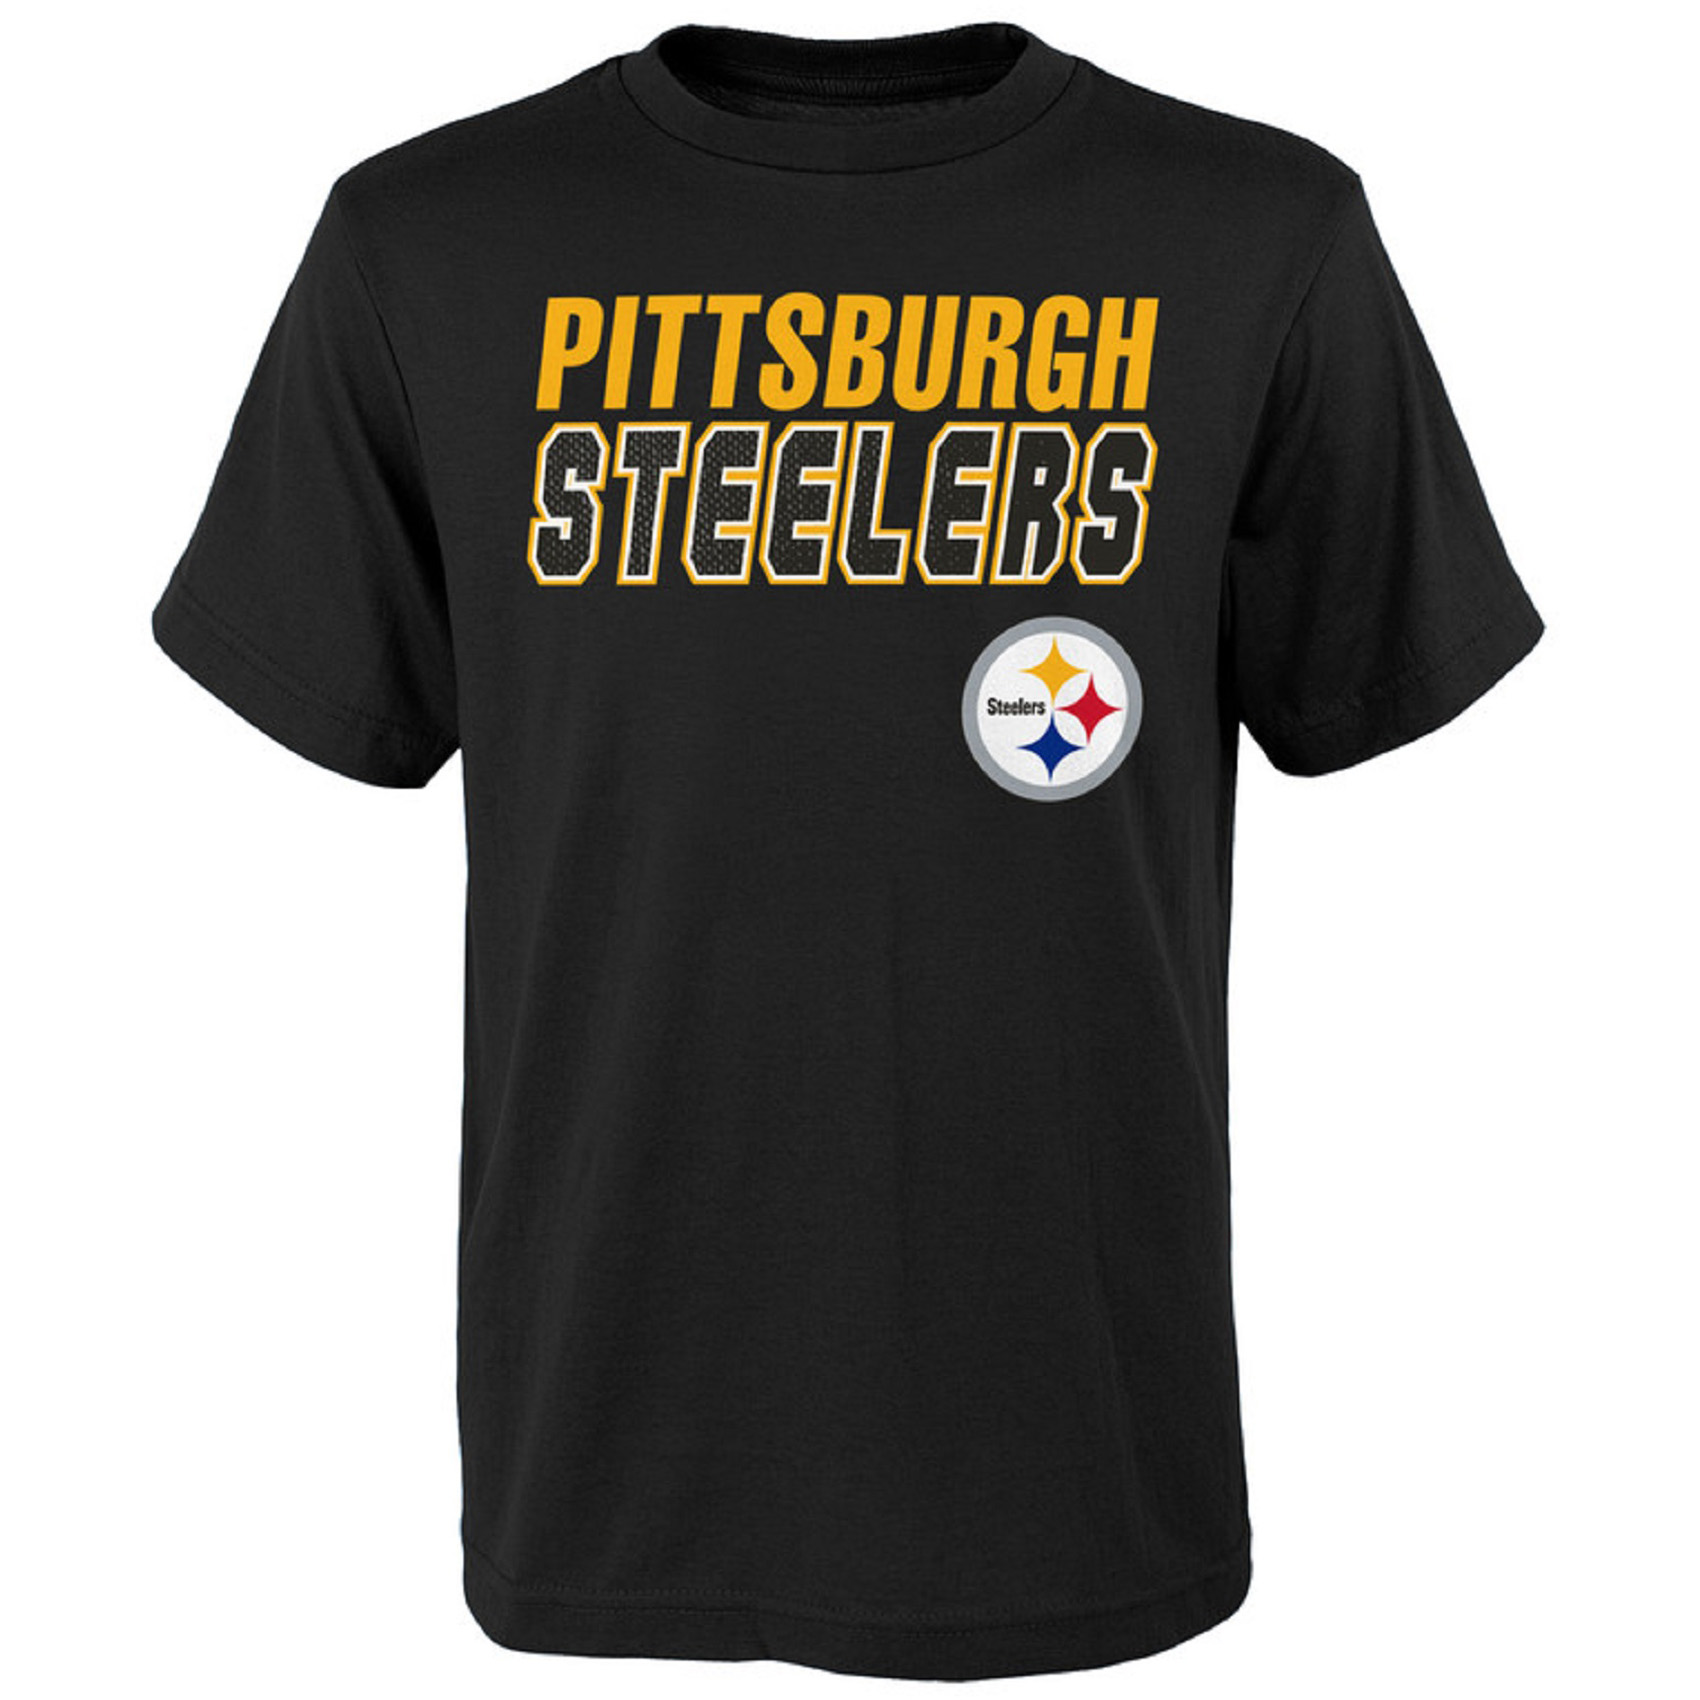 Youth Black Pittsburgh Steelers Outline T-Shirt